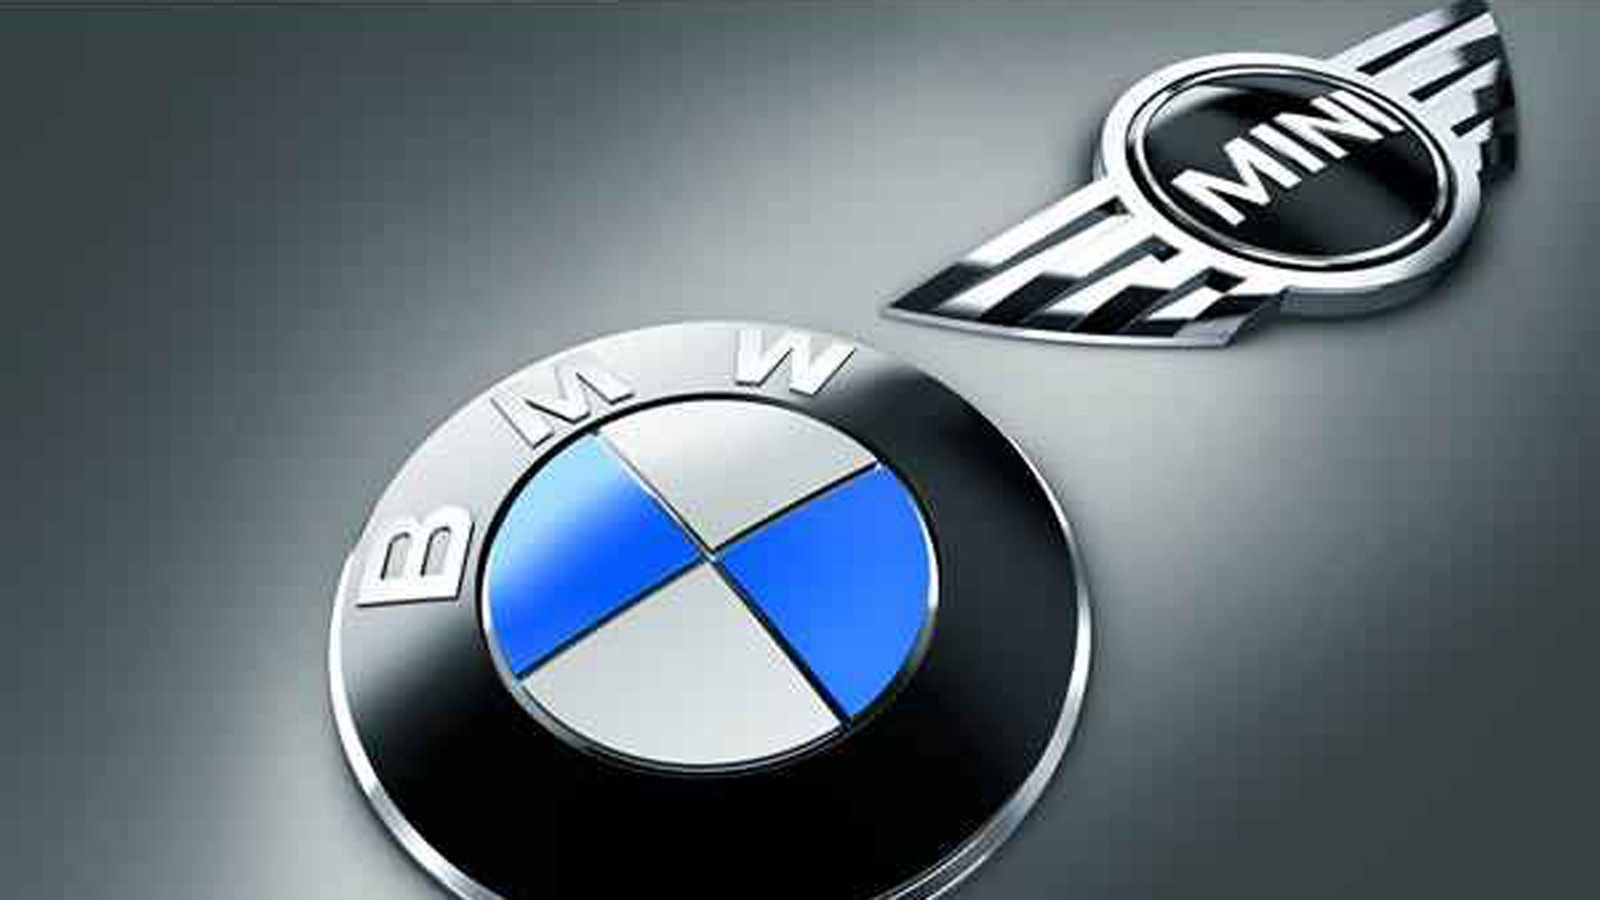 BMW and MINI logos